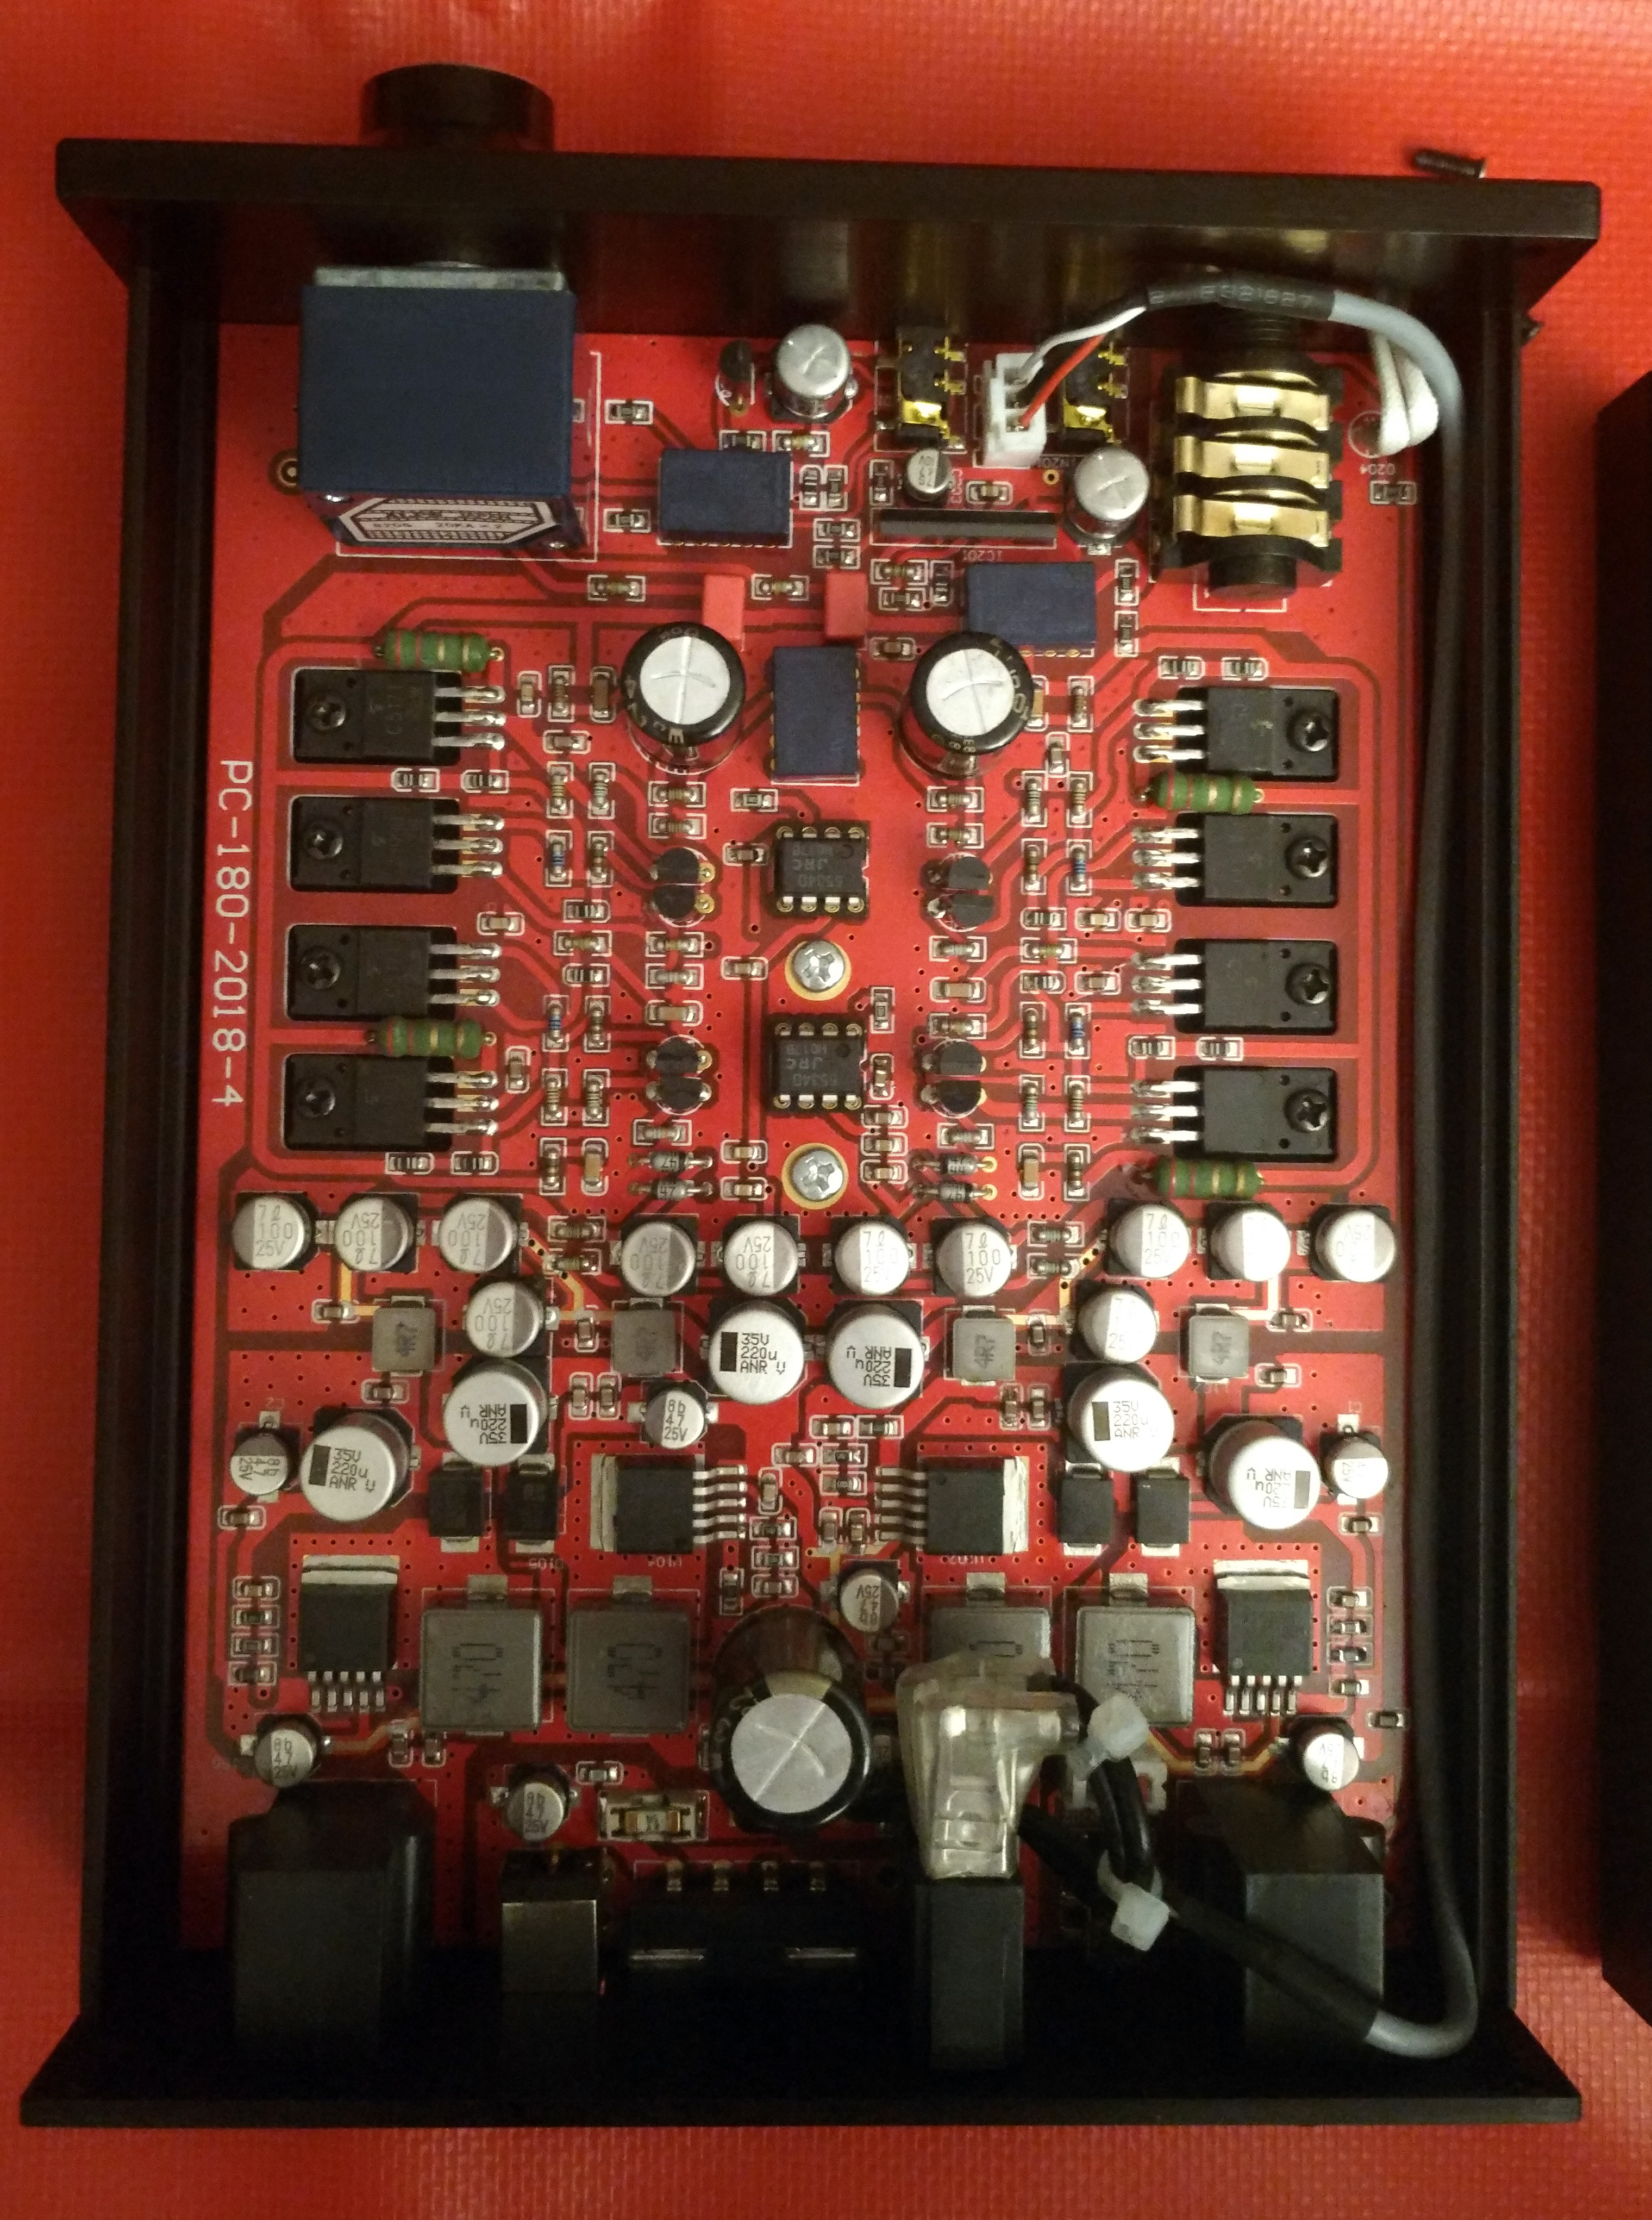 Burson Audio Fun Reviews Headphone And Discussion Head Circuit S1 Is Working But No Sound Came Out When The Signal To 03